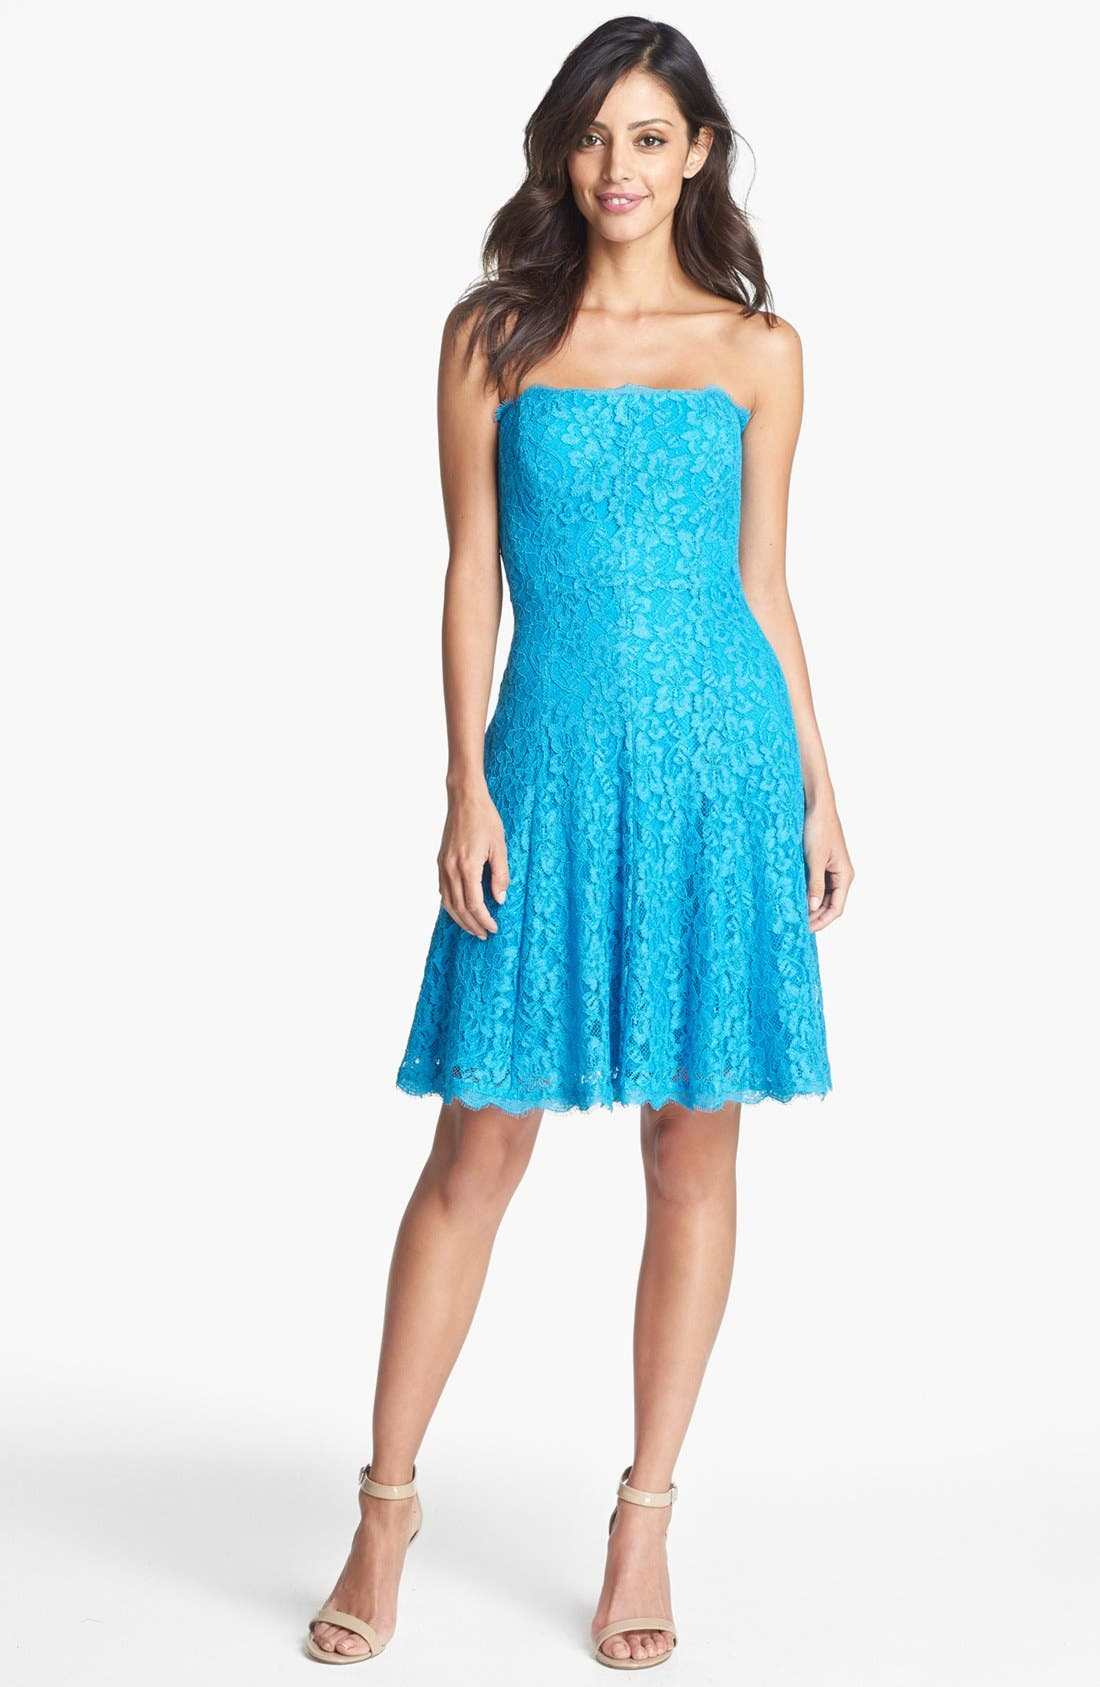 Alternate Image 1 Selected - Adrianna Papell Strapless Lace Dress (Regular & Petite)